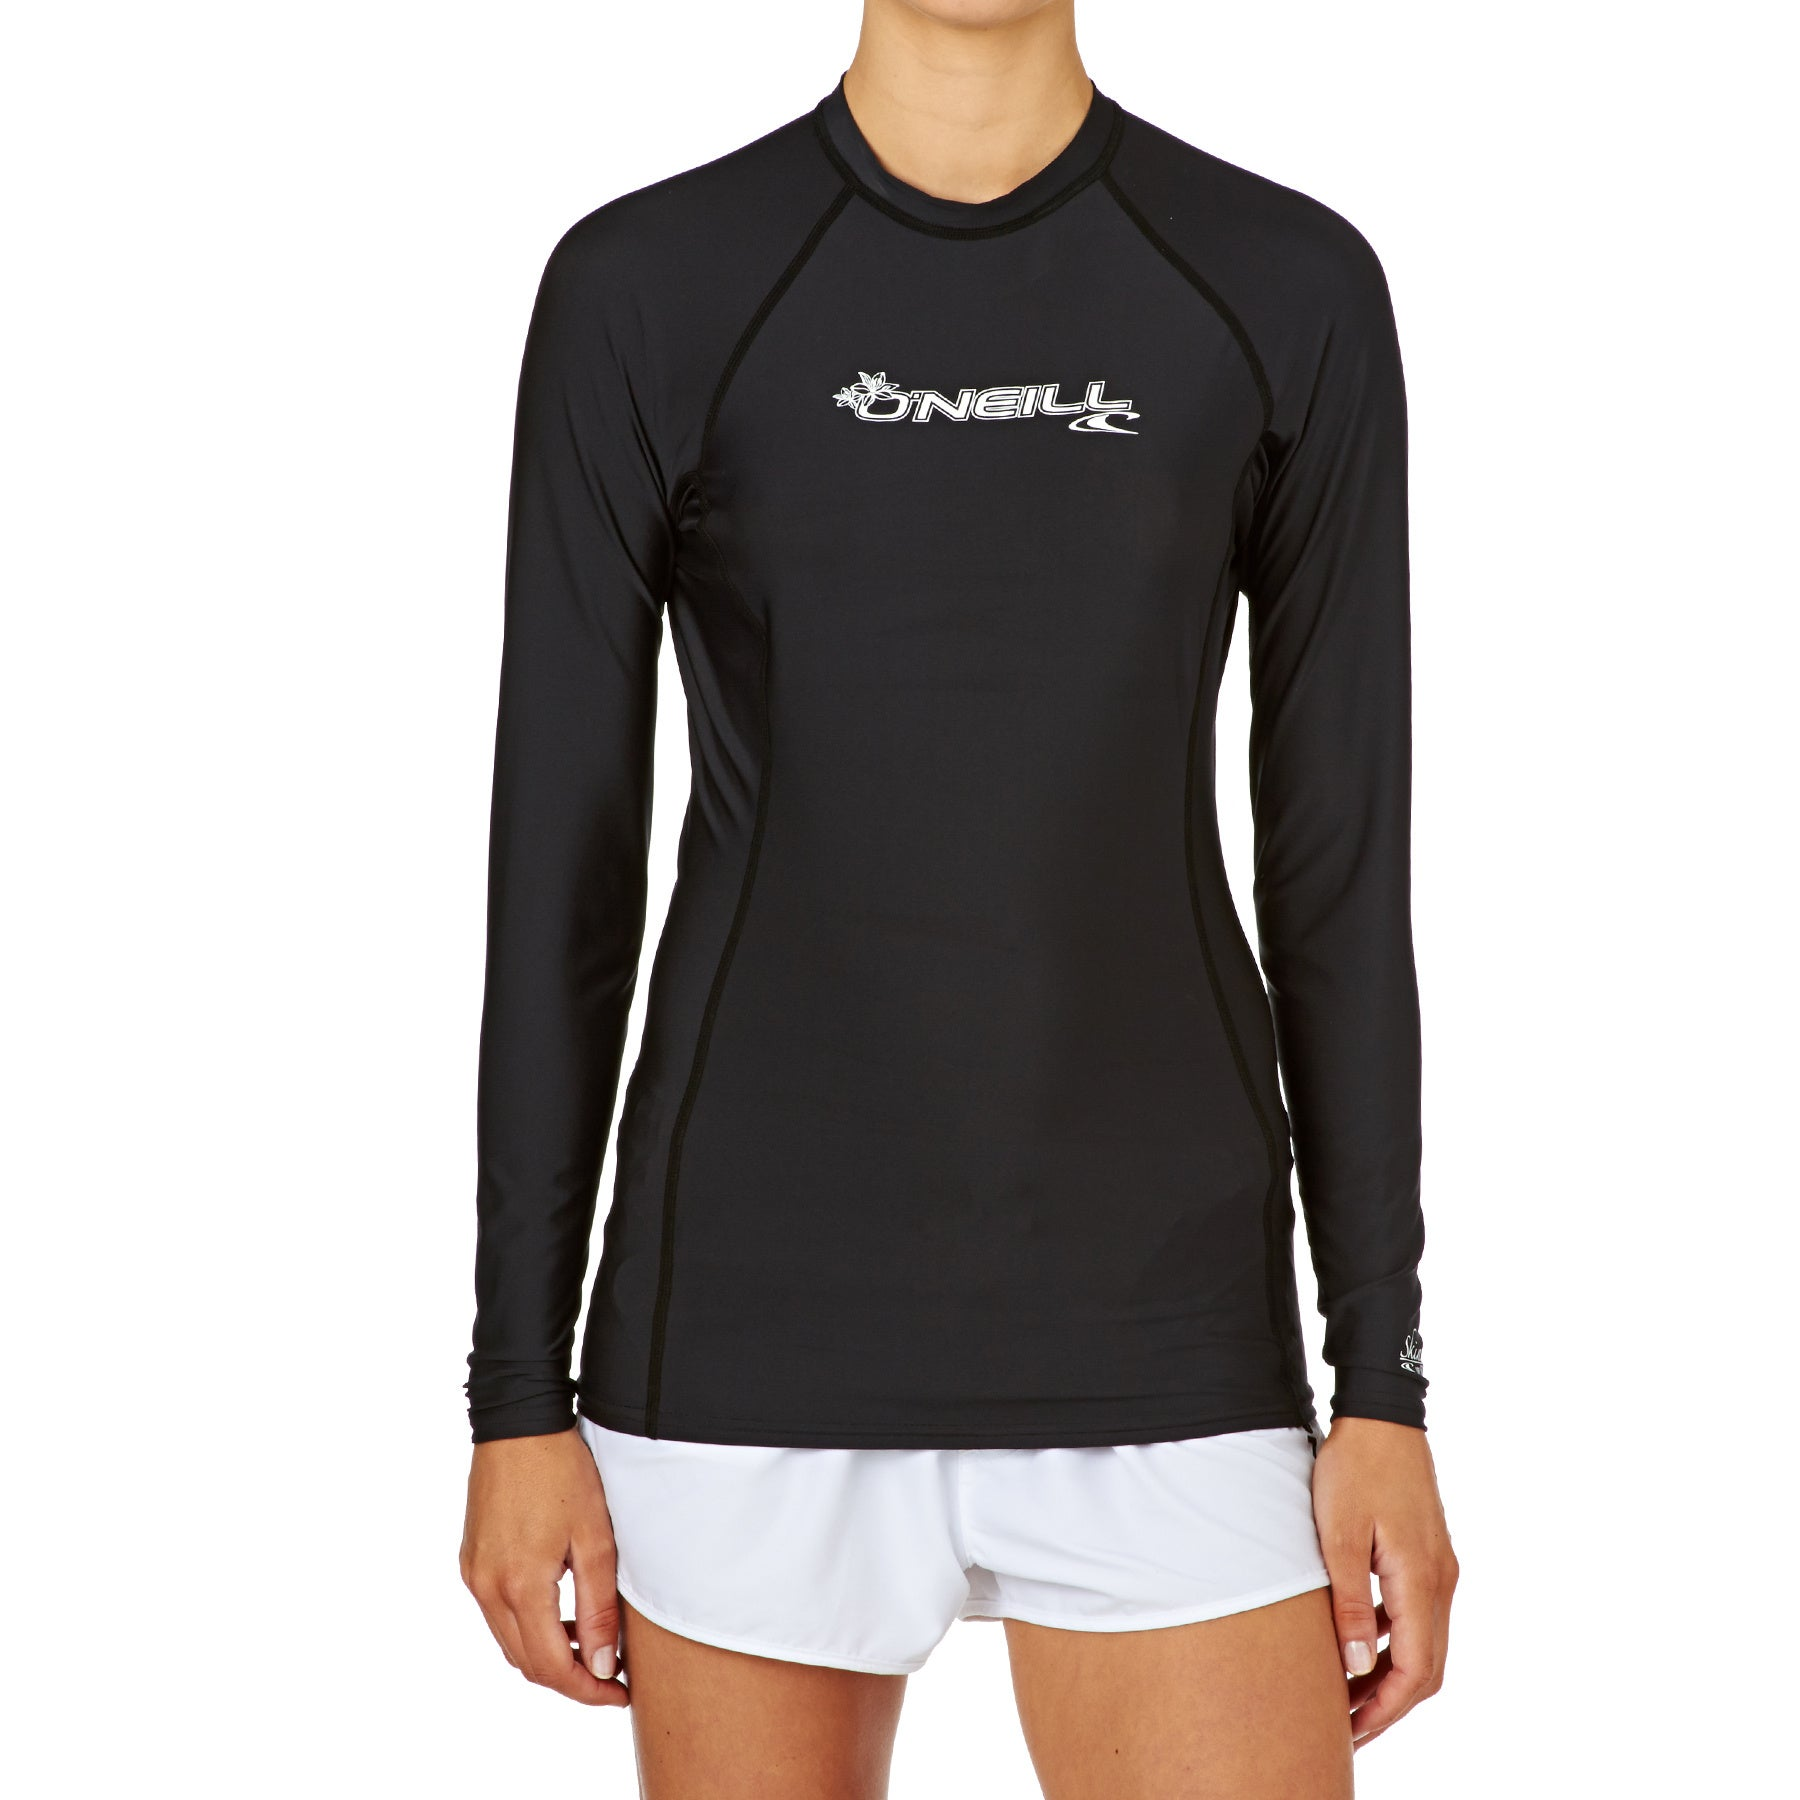 O Neill Basic Skins Long Sleeve Crew Ladies Rash Vest